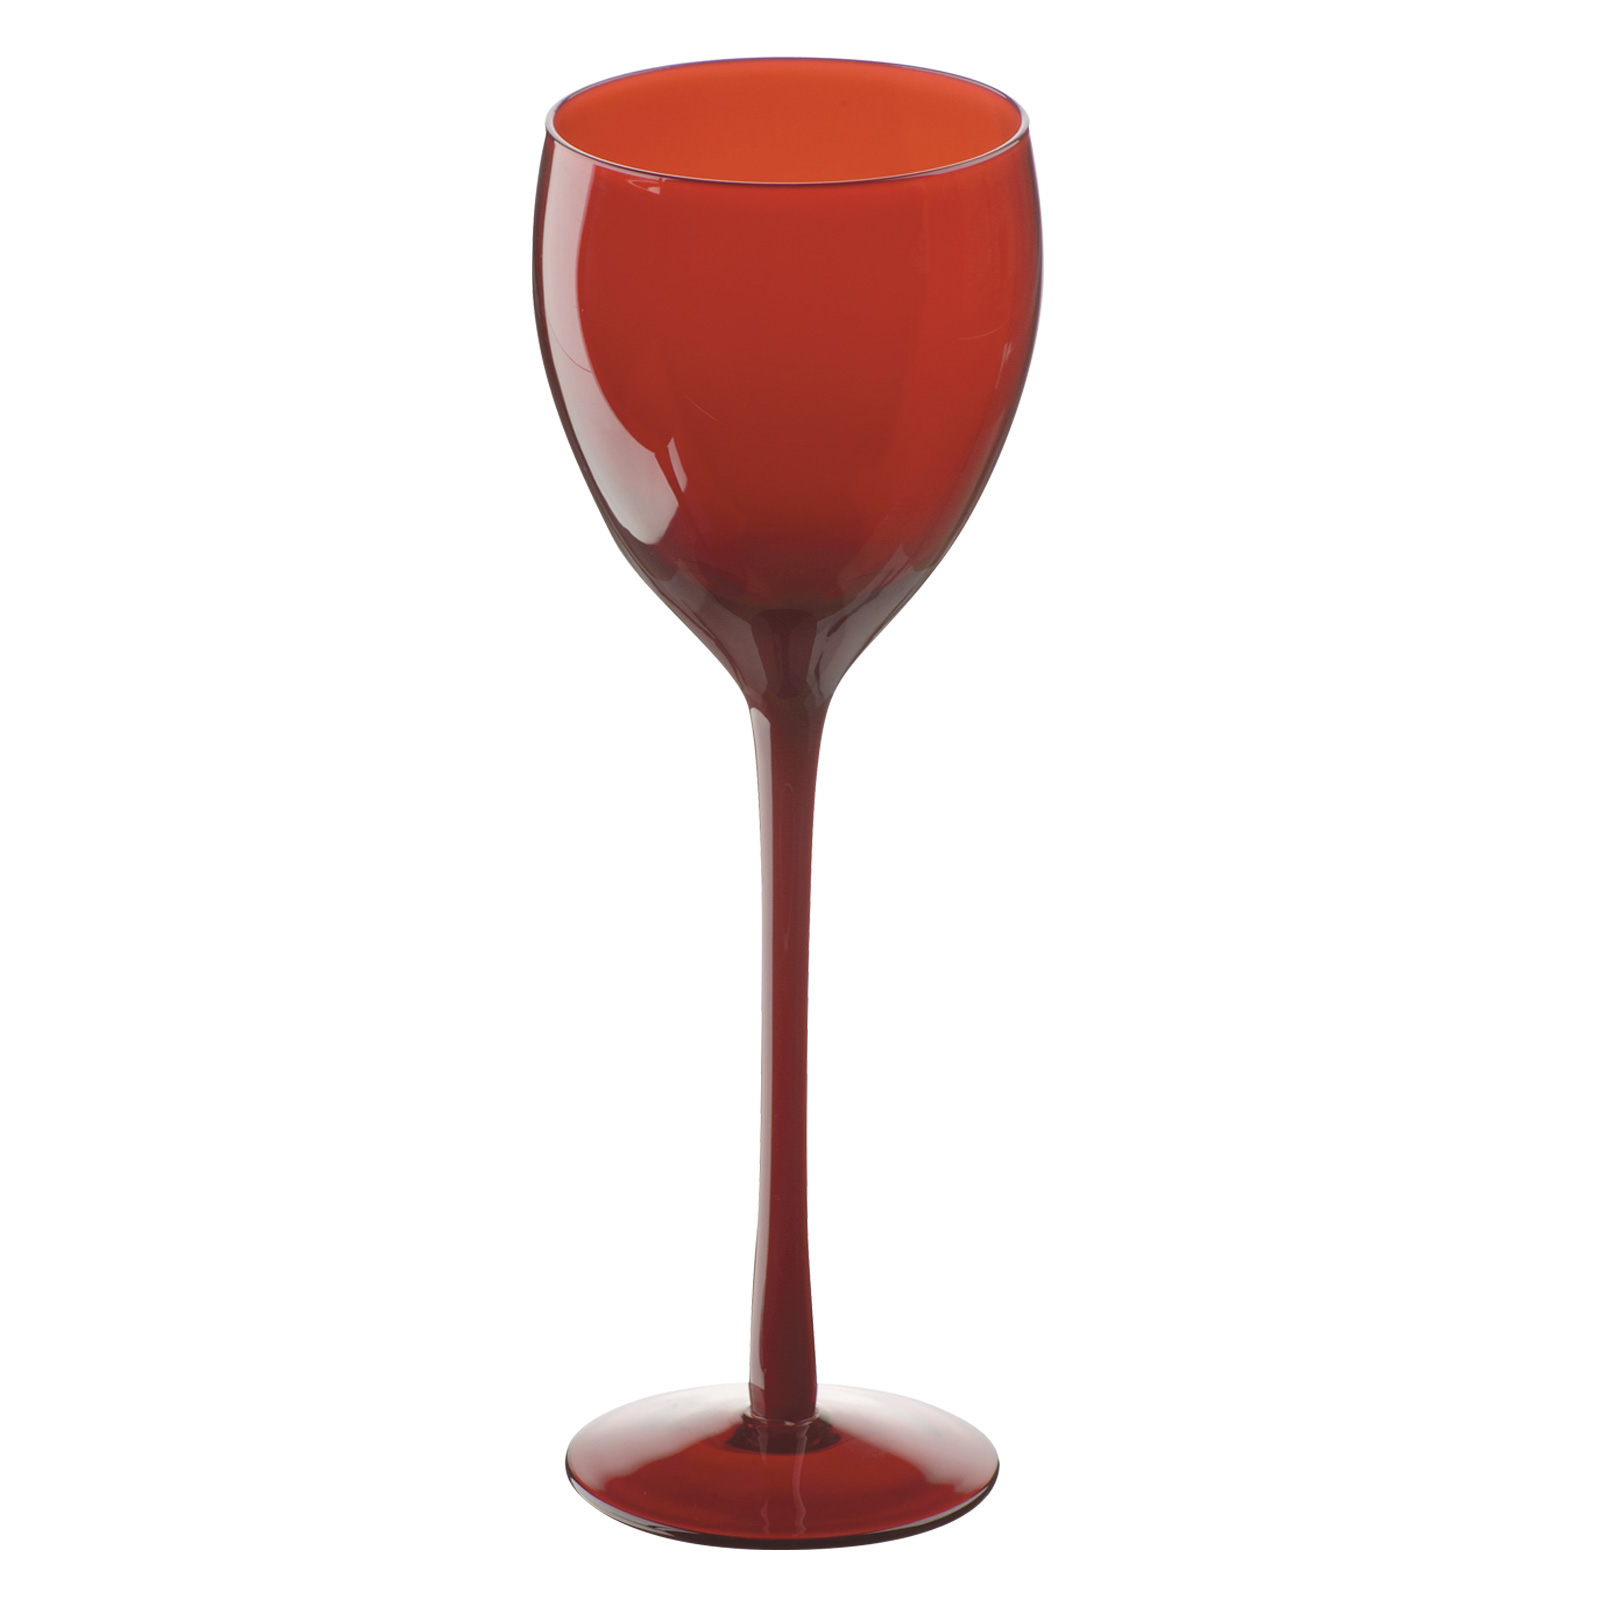 Set of 2 Midnight Goblets Red by Artland